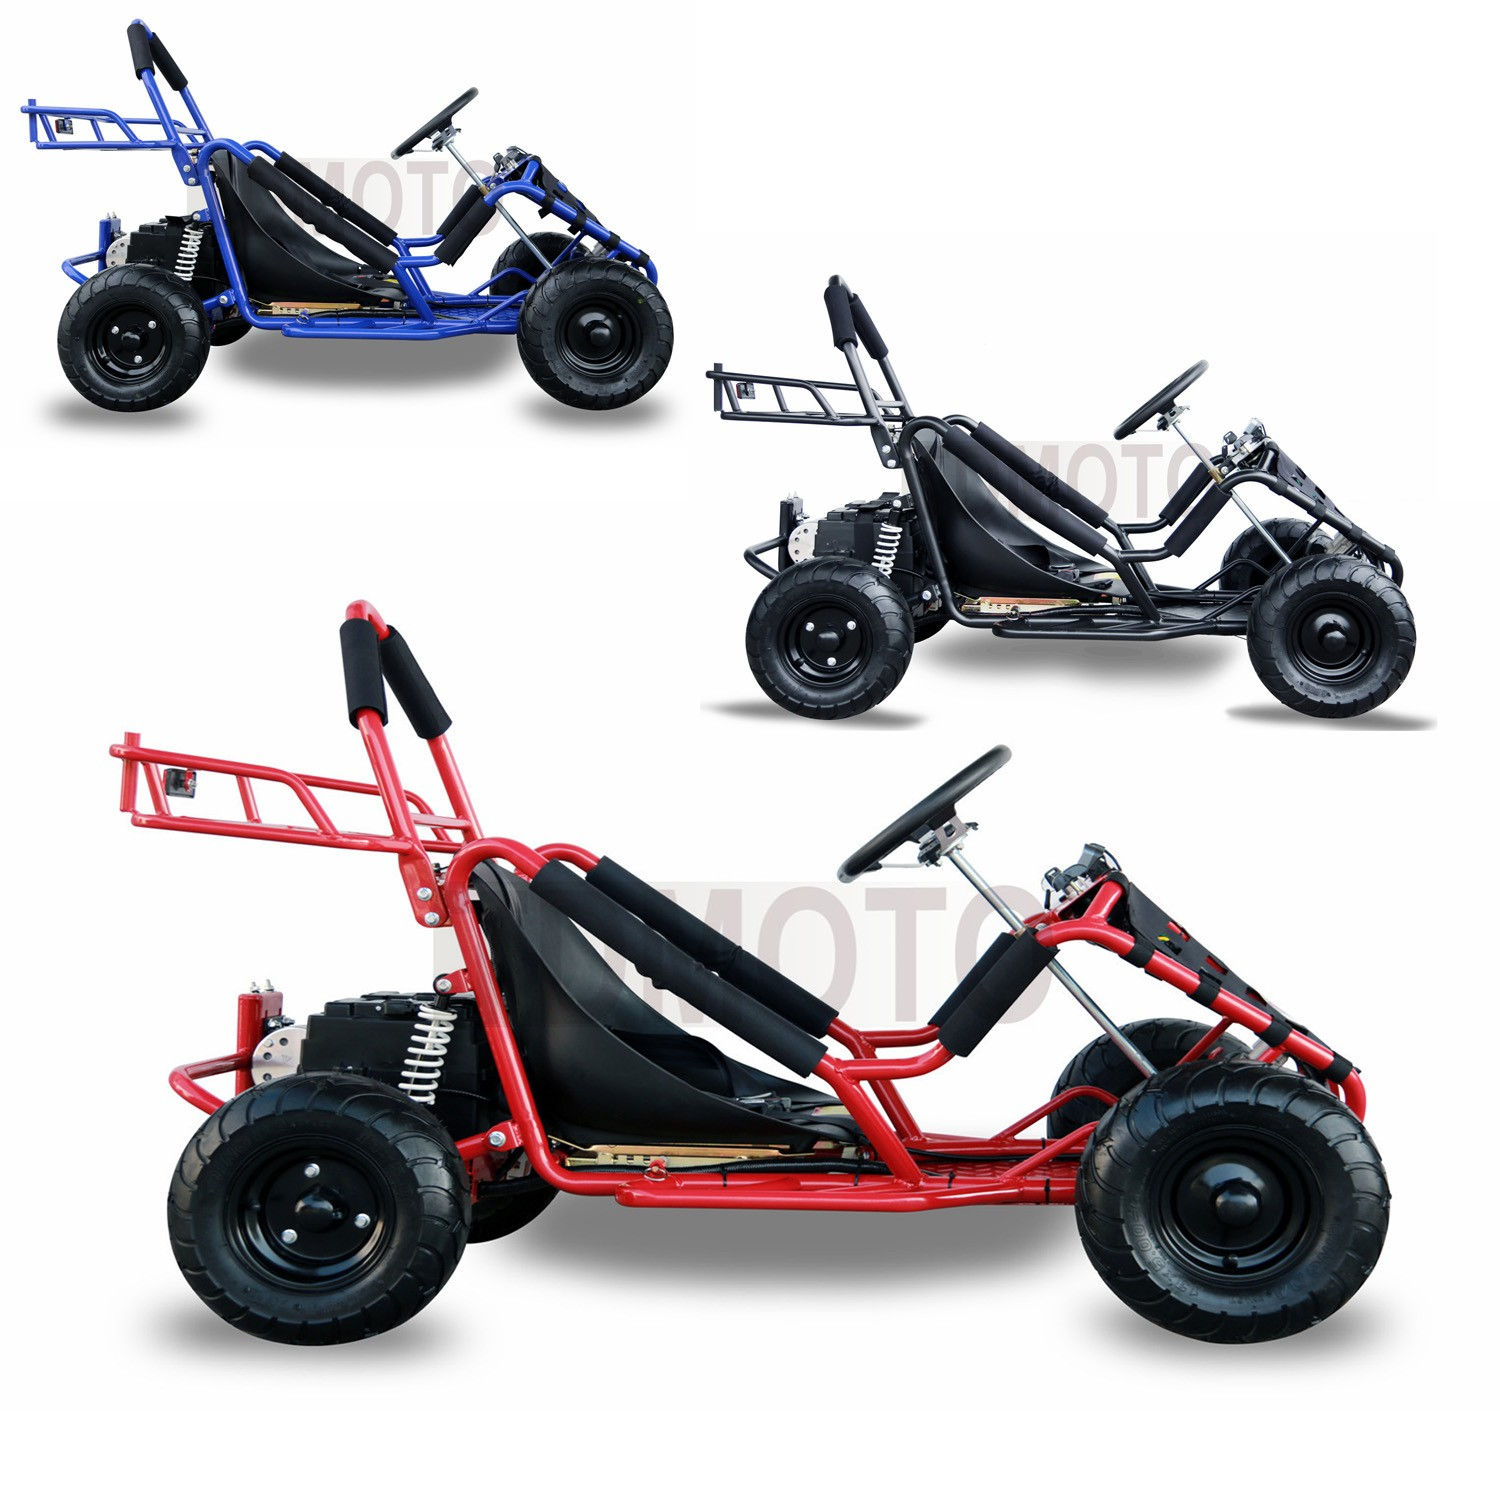 electric racing outdoors go kart 48v 1000w kids quads off. Black Bedroom Furniture Sets. Home Design Ideas